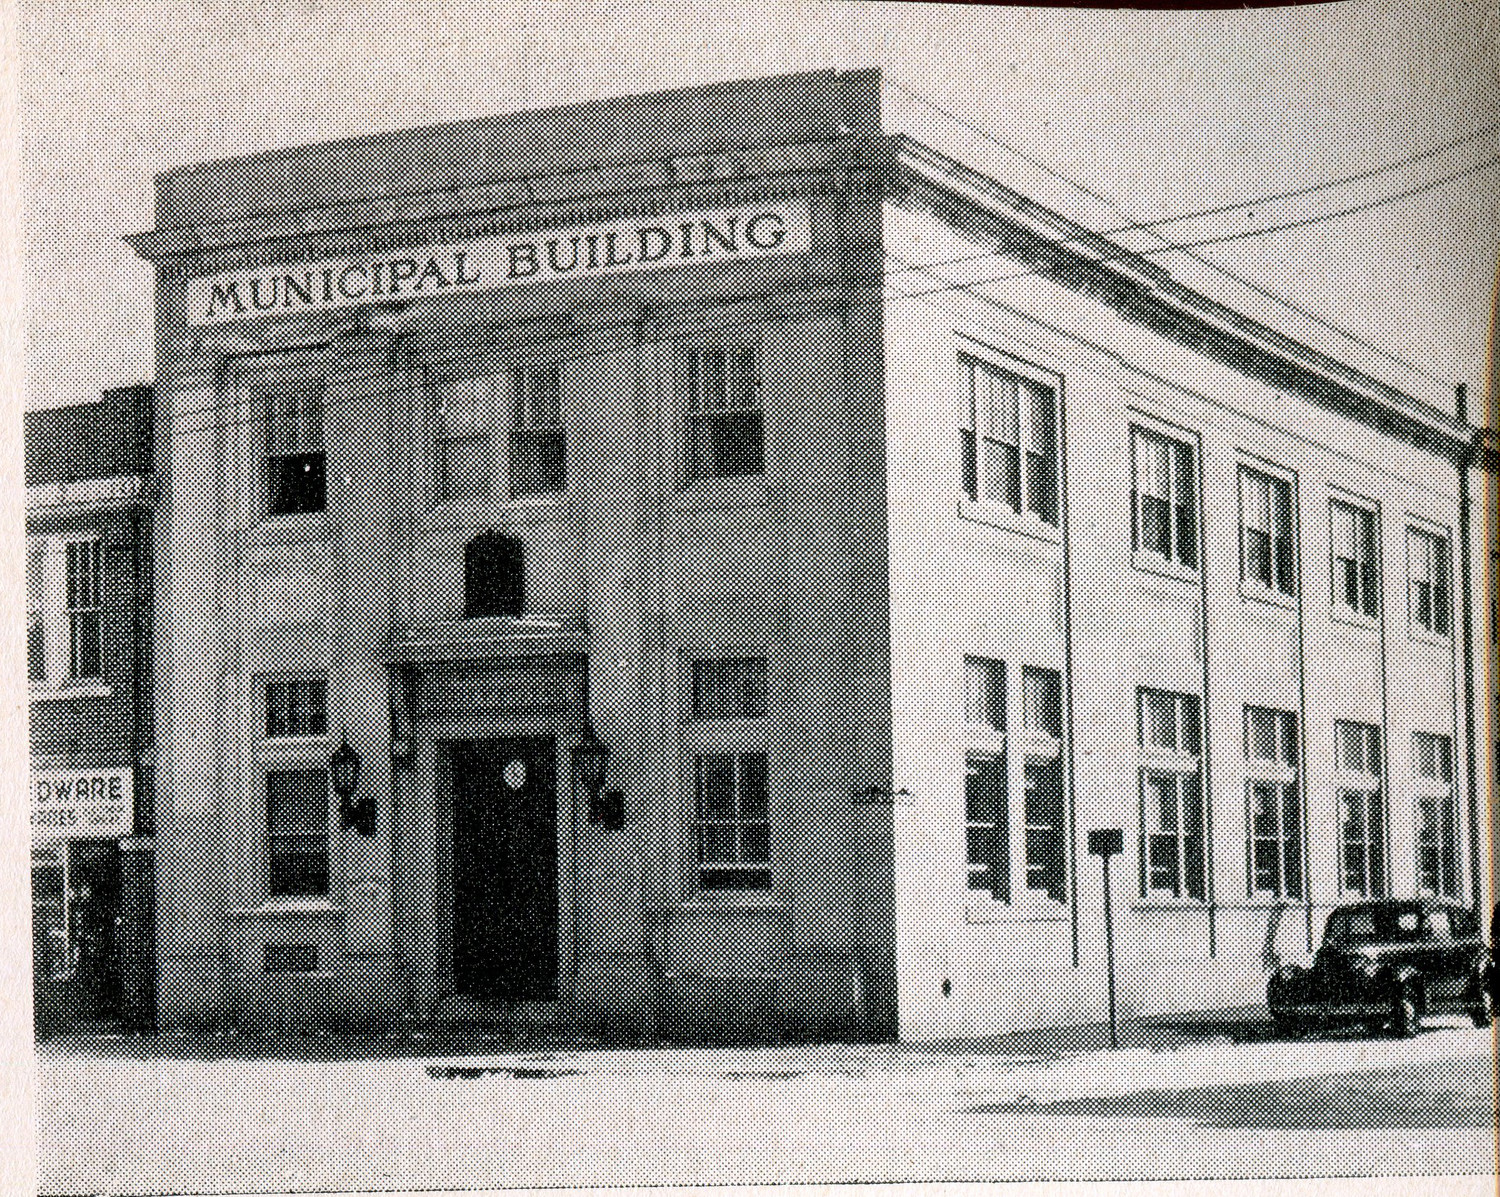 The building, constructed in 1926 as the first Village Hall, had been occupied by various businesses ever since the late '50s, when the current Village Hall was built.